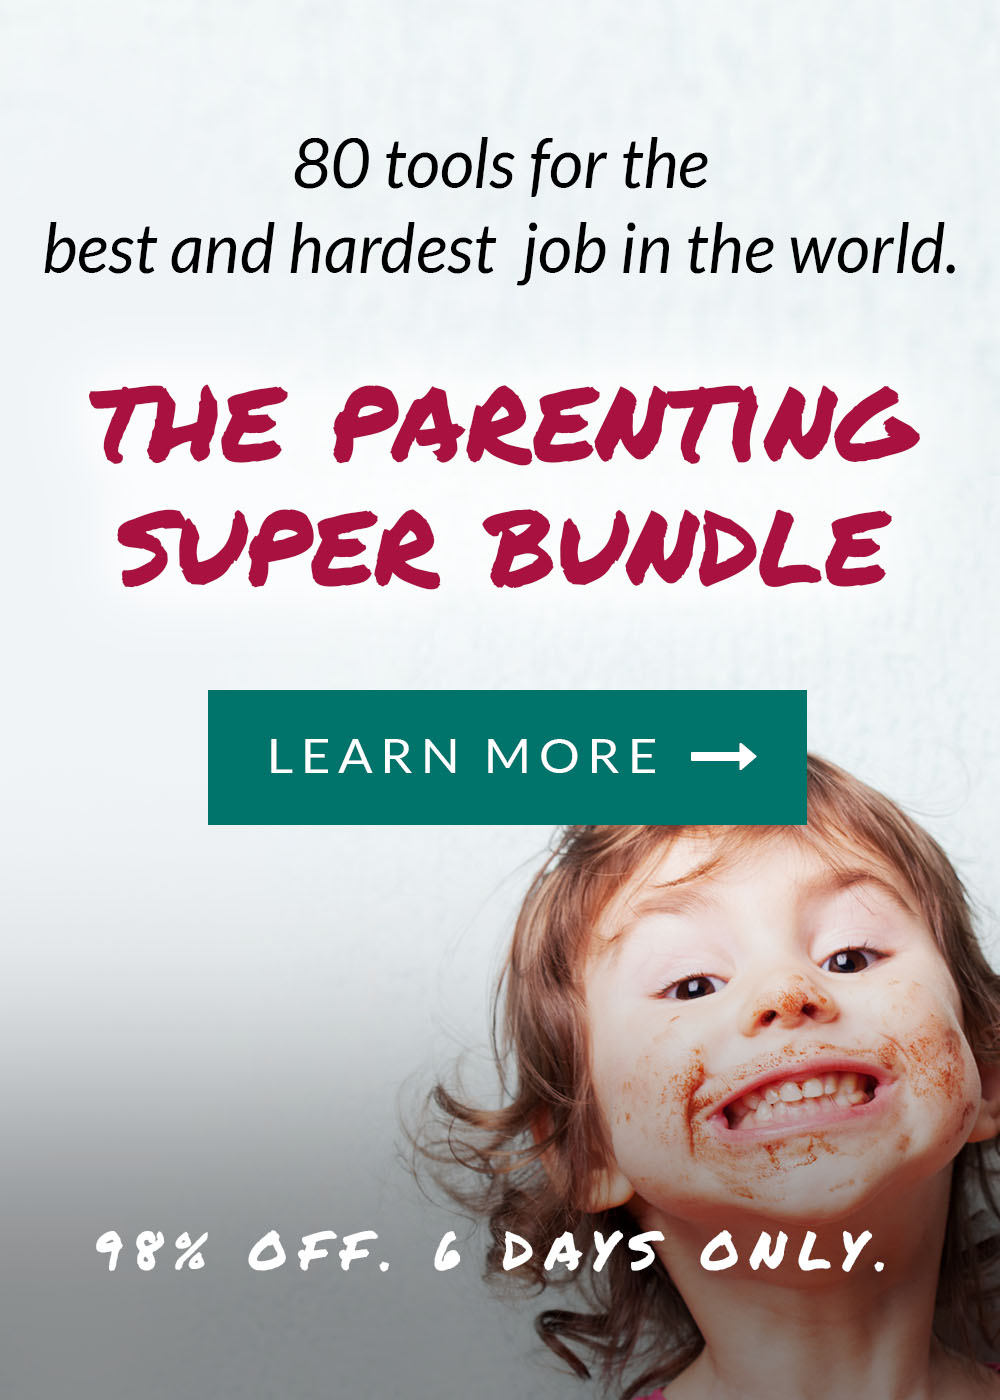 Parenting Super Bundle!!